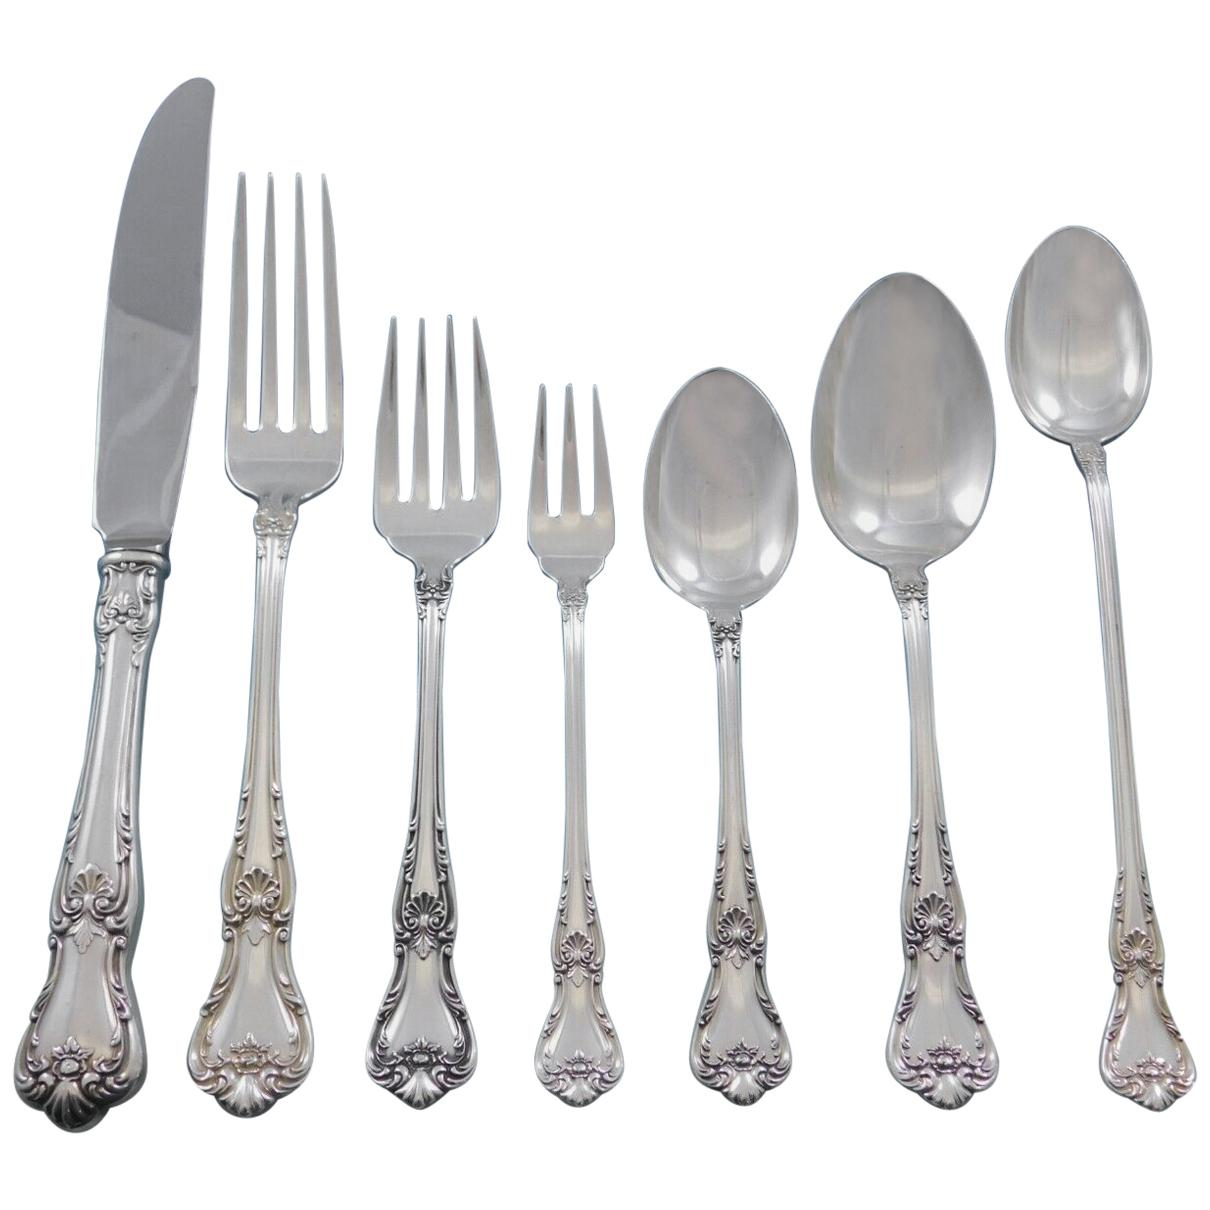 Memory Lane by Lunt Sterling Silver Flatware Set for 12 Dinner Service 84 Pieces